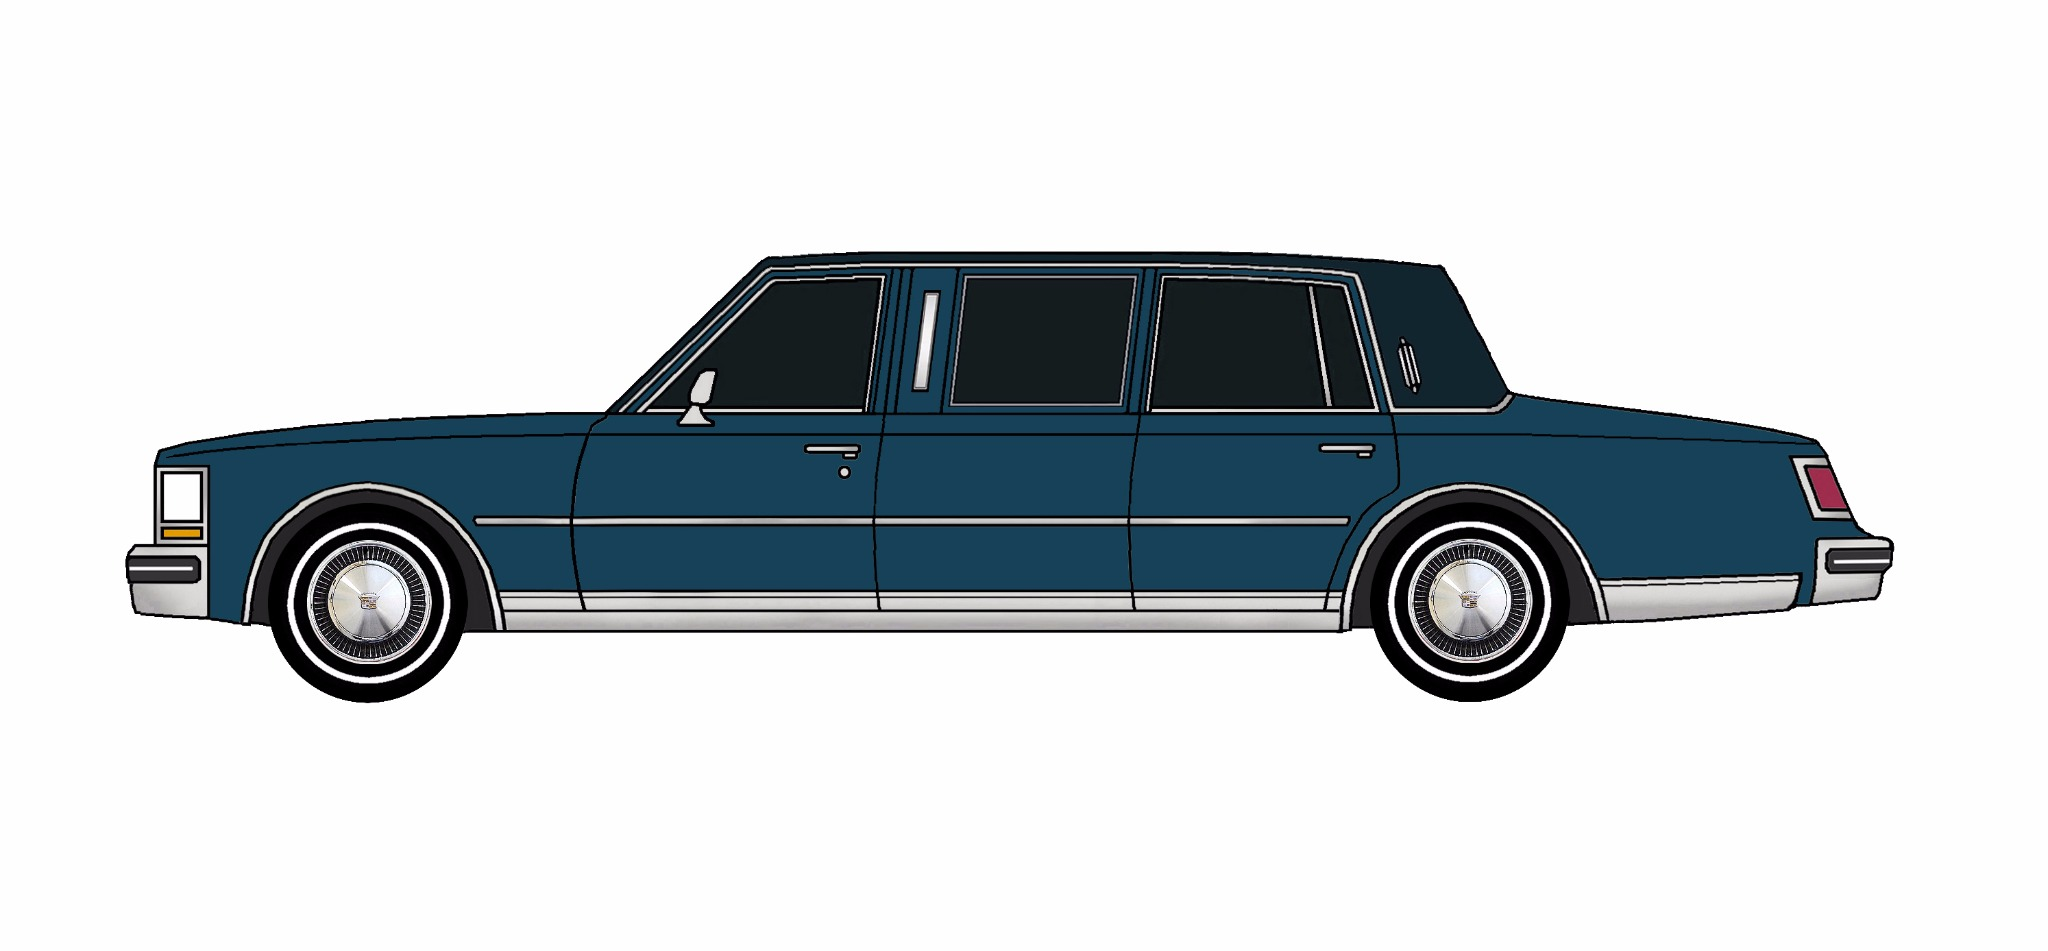 1978 Cadillac Seville Limo MIDNIGHT BLUE